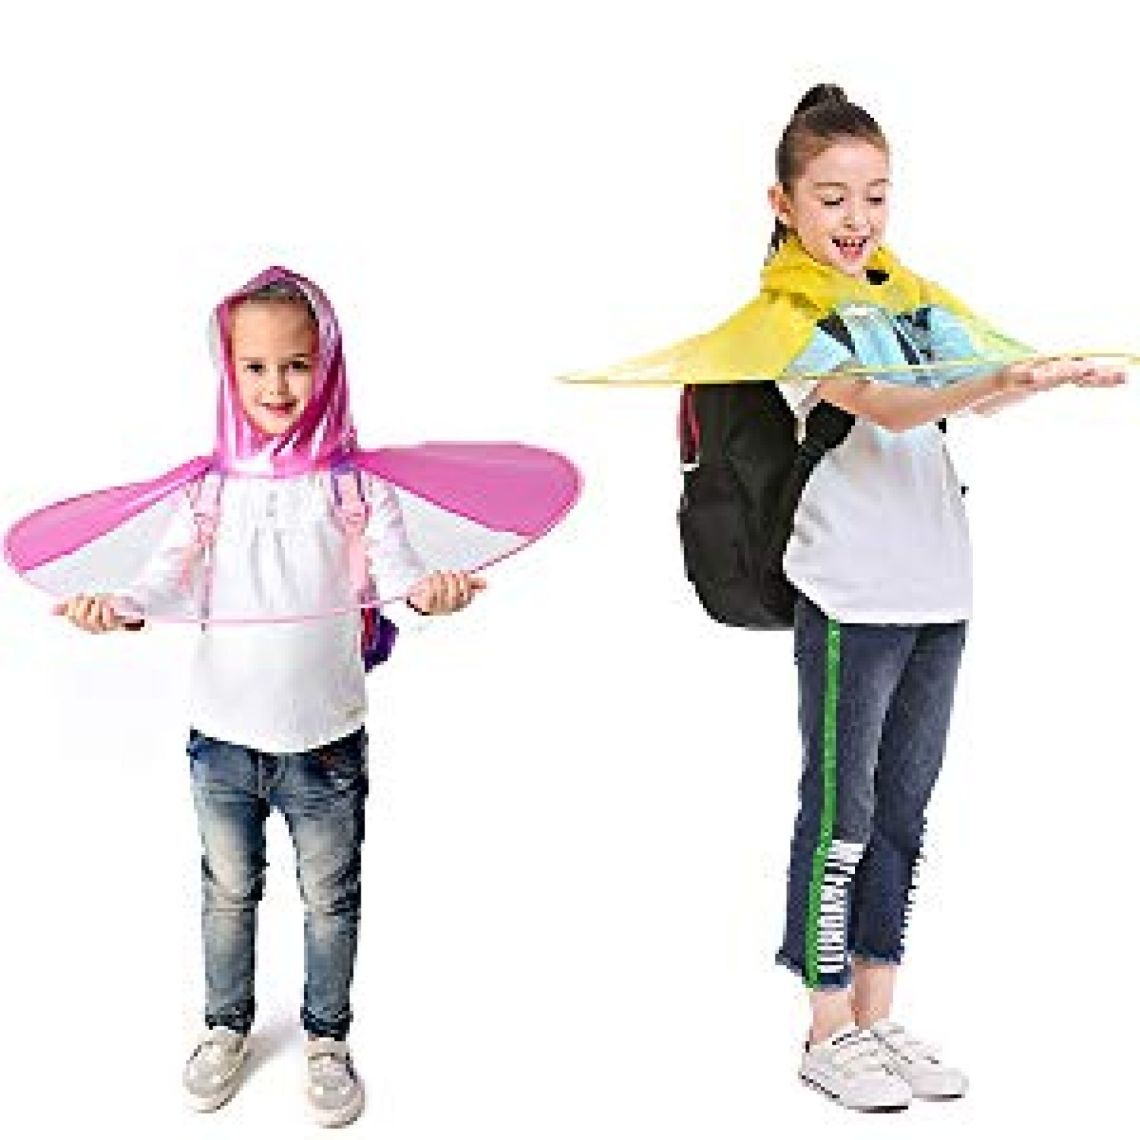 Amazon.com: Y-Nut UFO Raincoat, Large for Kids Adults, Saucer Poncho Head Umbrella Novelty Headwear Cap Hat Rainwear for Children: Clothing